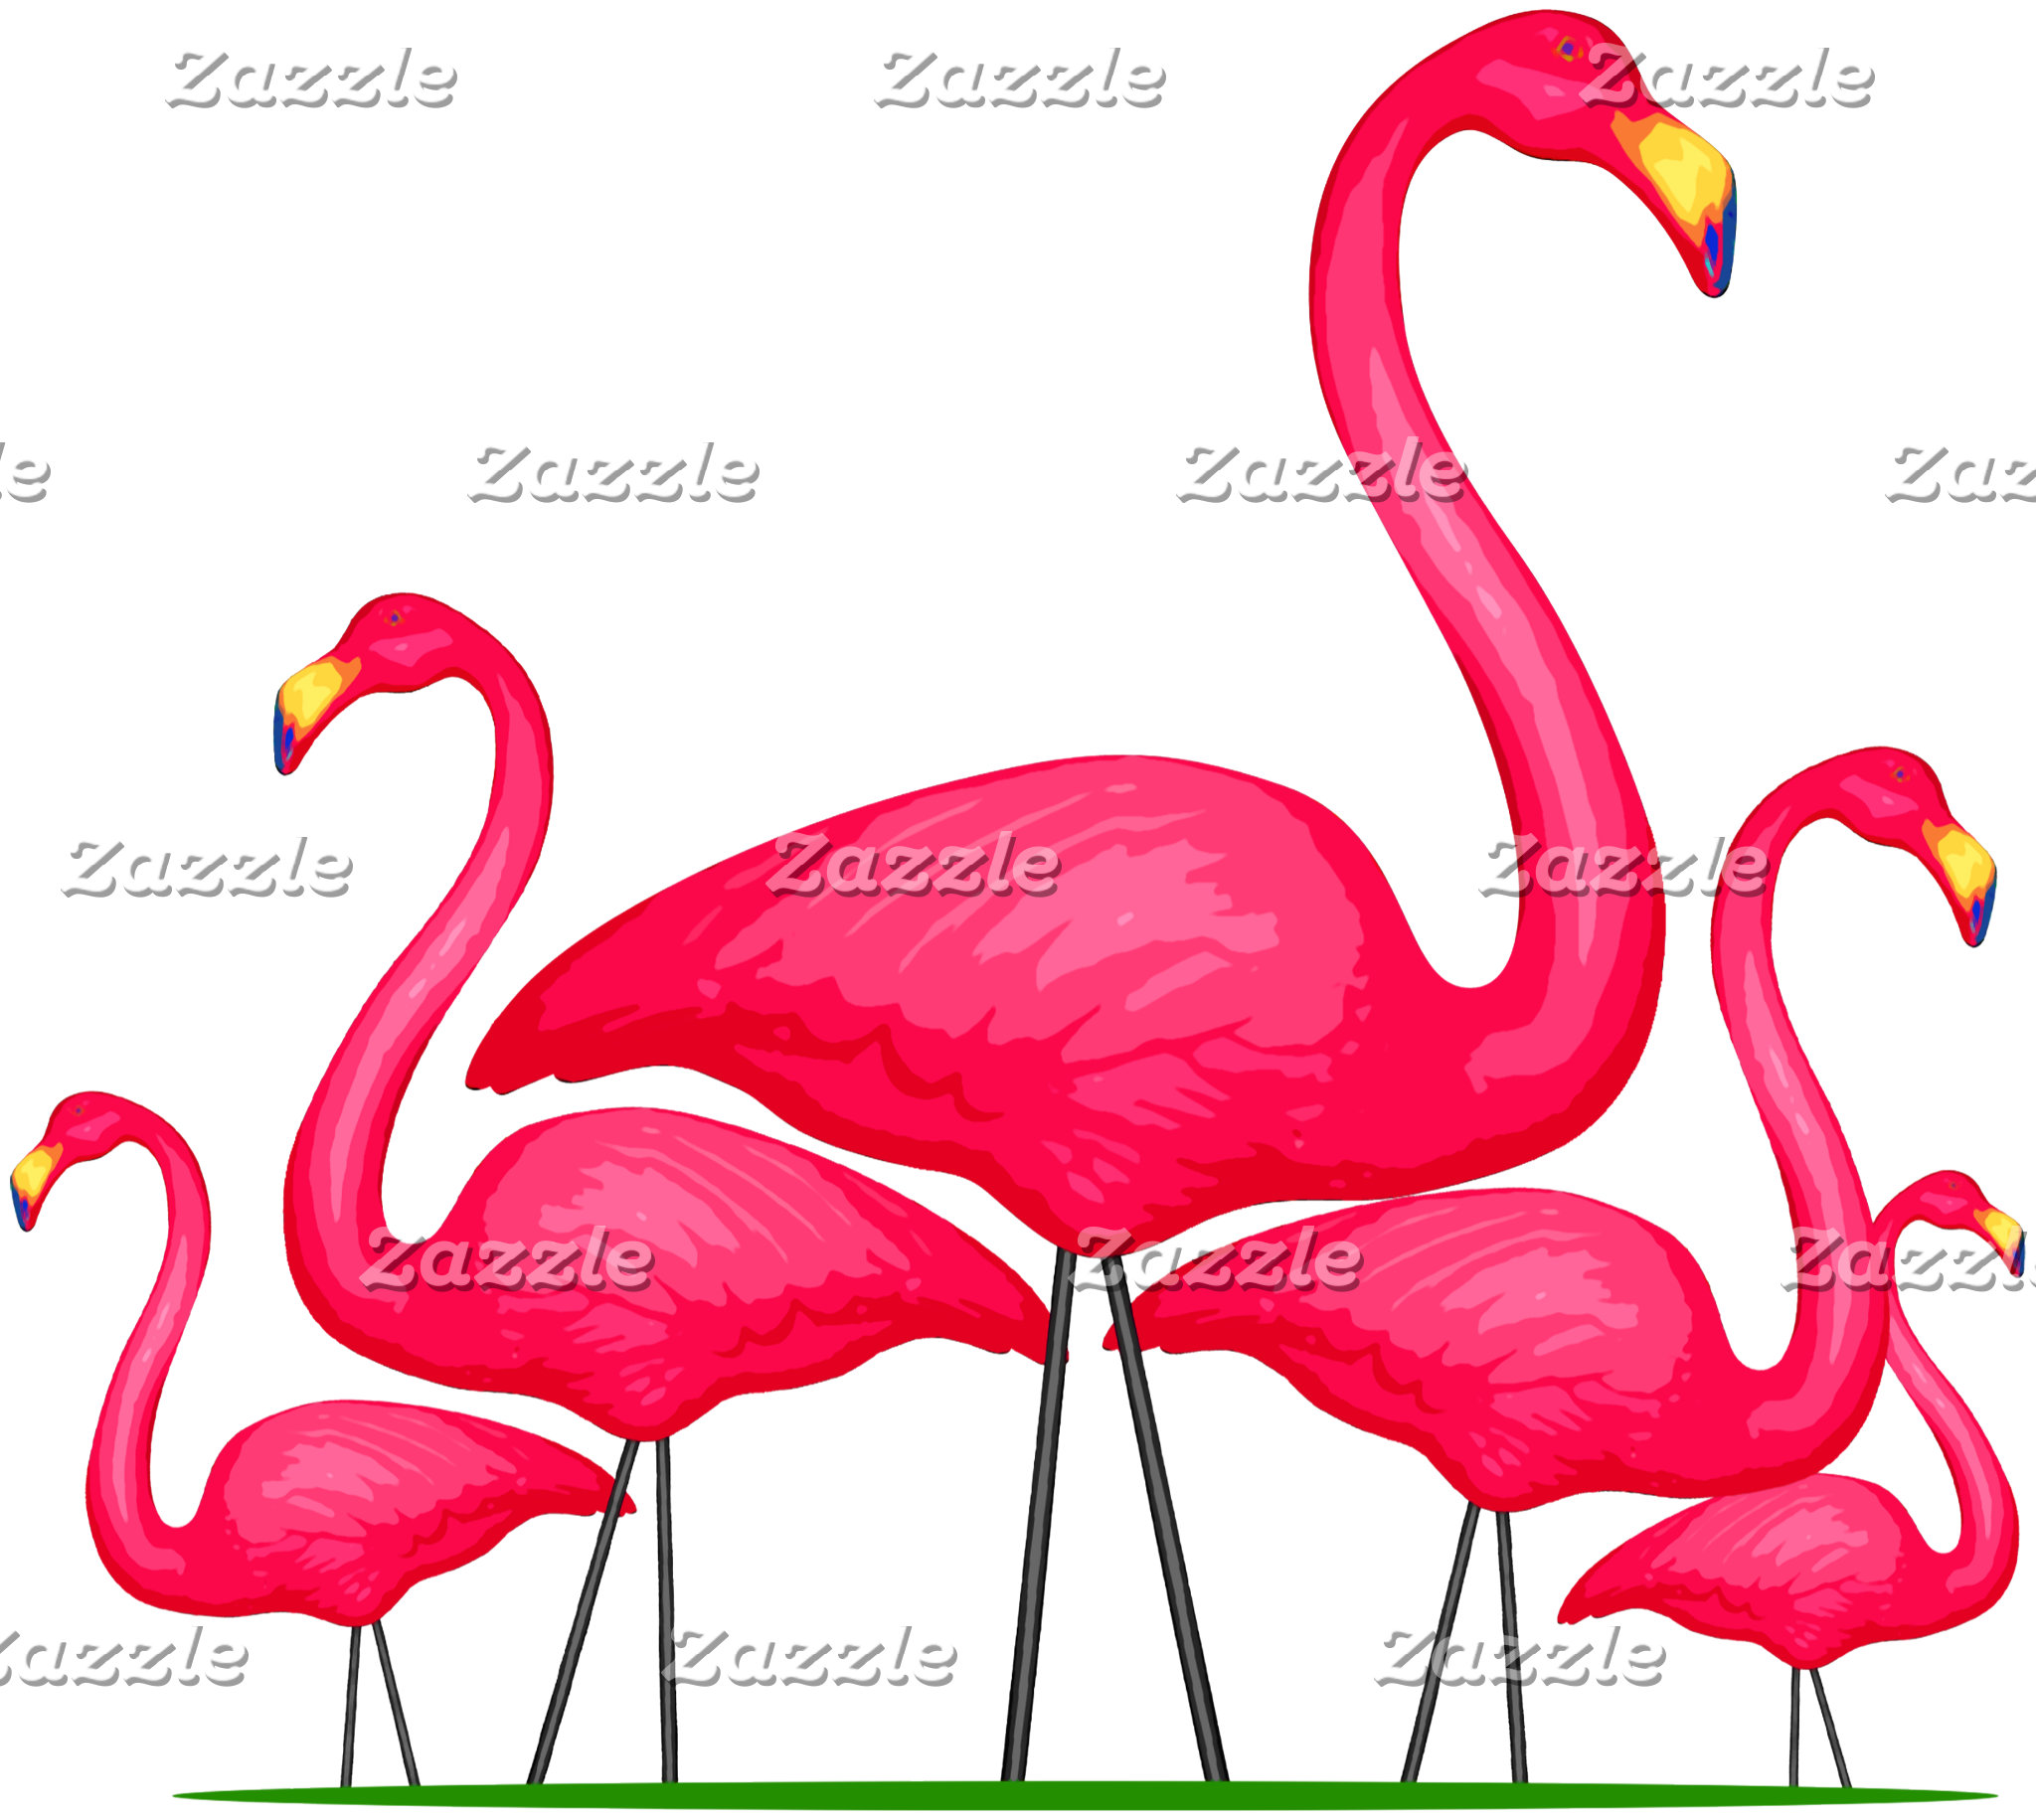 FLAMINGO POWER!